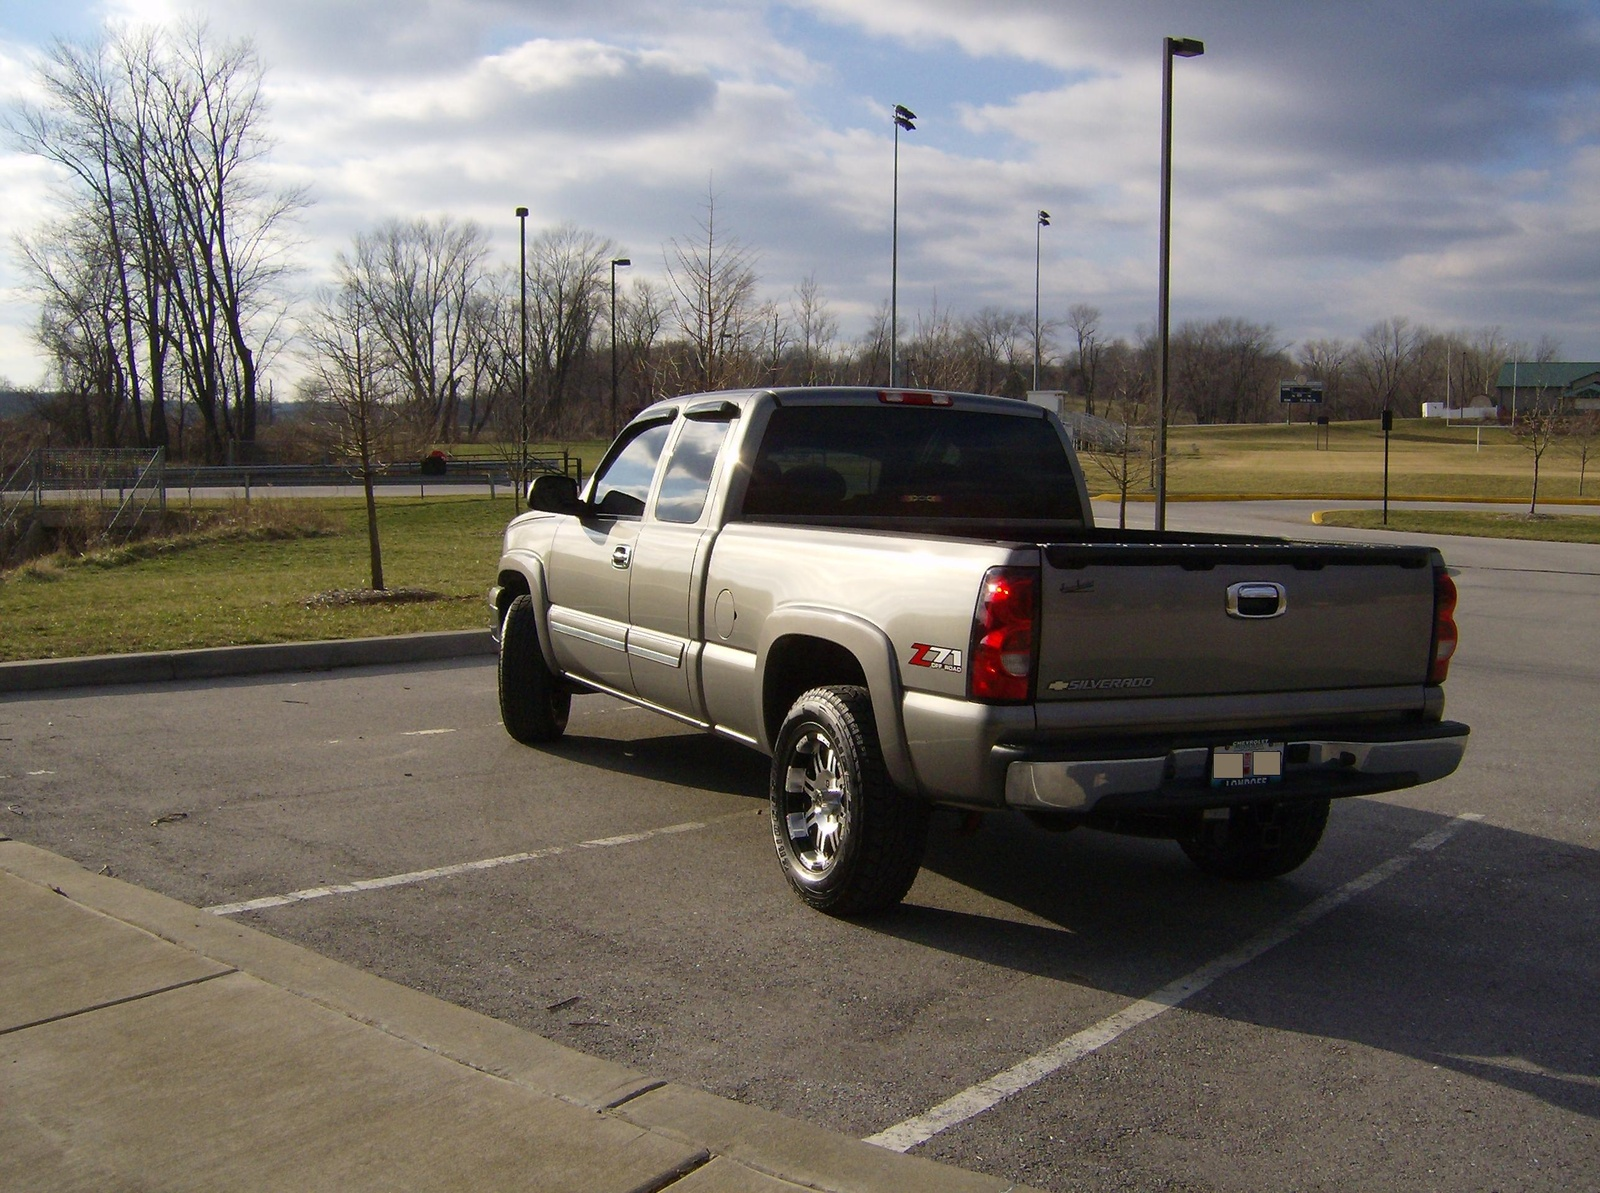 2006 chevrolet silverado 1500 1997 chevy tahoe lifted chevy silverado. Cars Review. Best American Auto & Cars Review